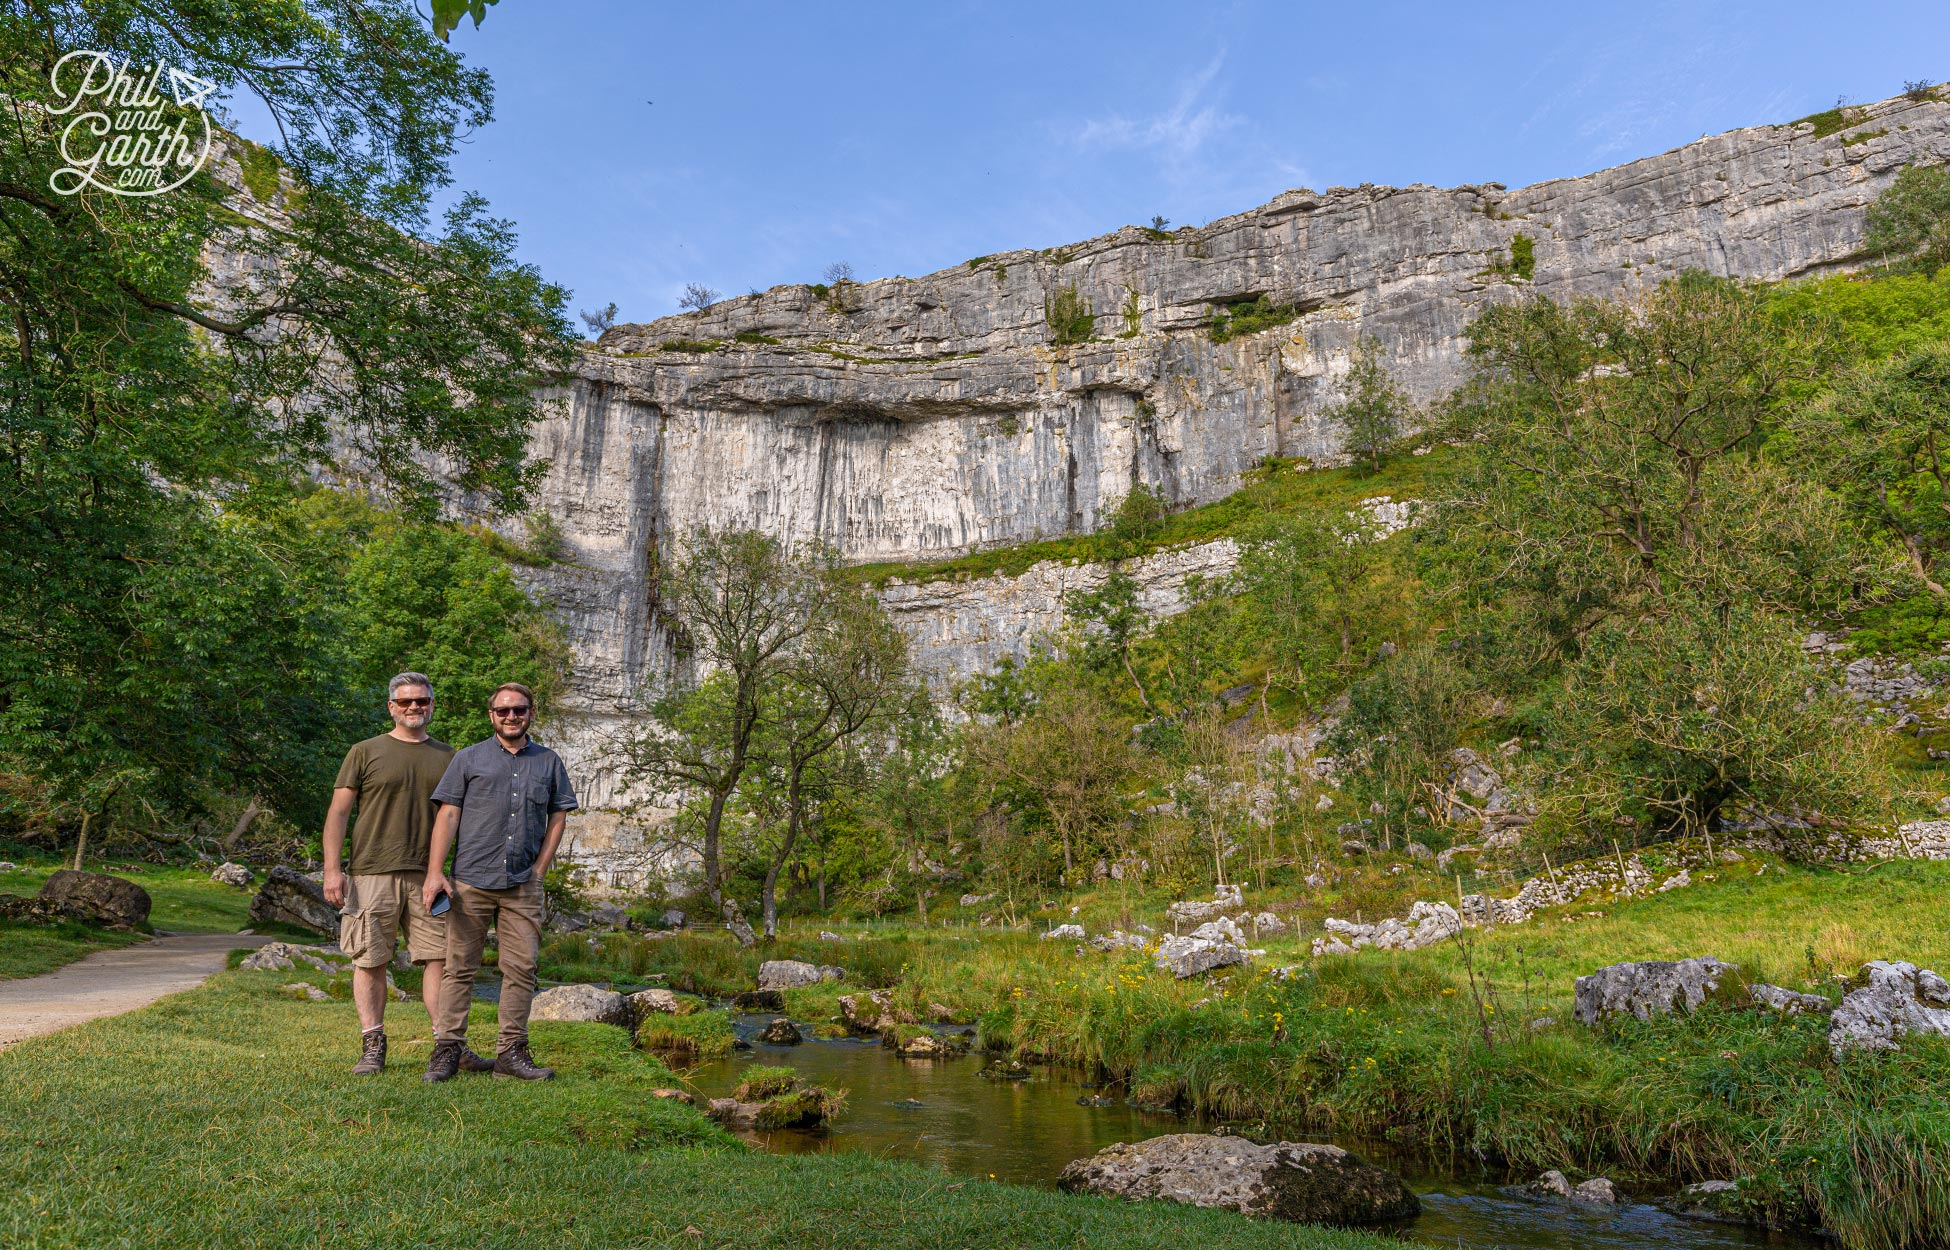 Phil and Garth next to the 80 metre high limestone cliffs of Malham Cove